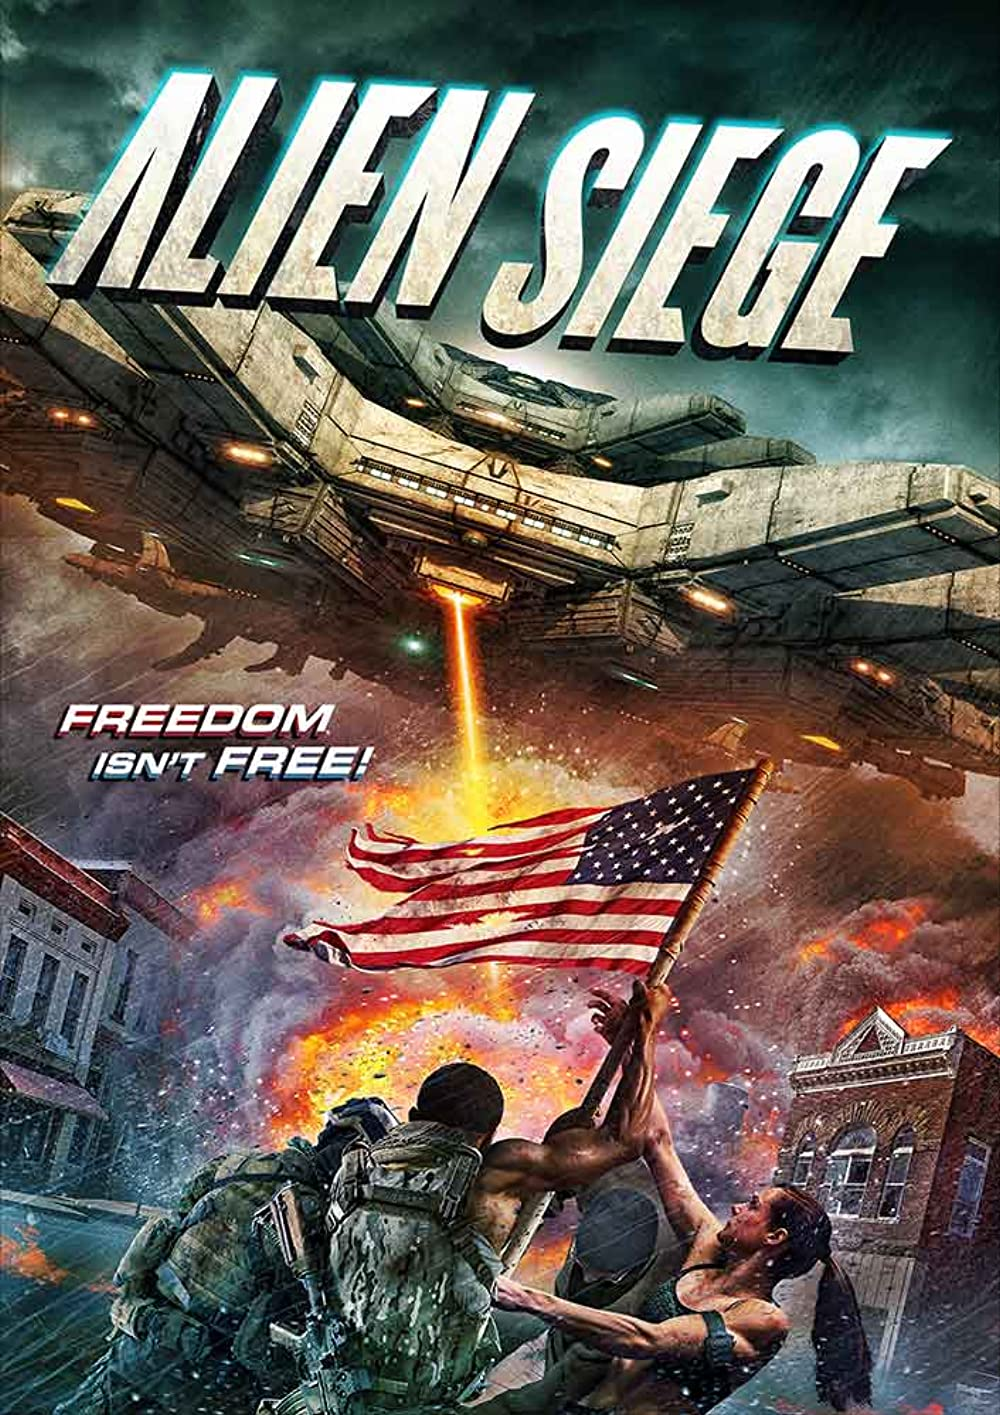 Alien Siege 2018 Hindi Dubbed Full Movie Download